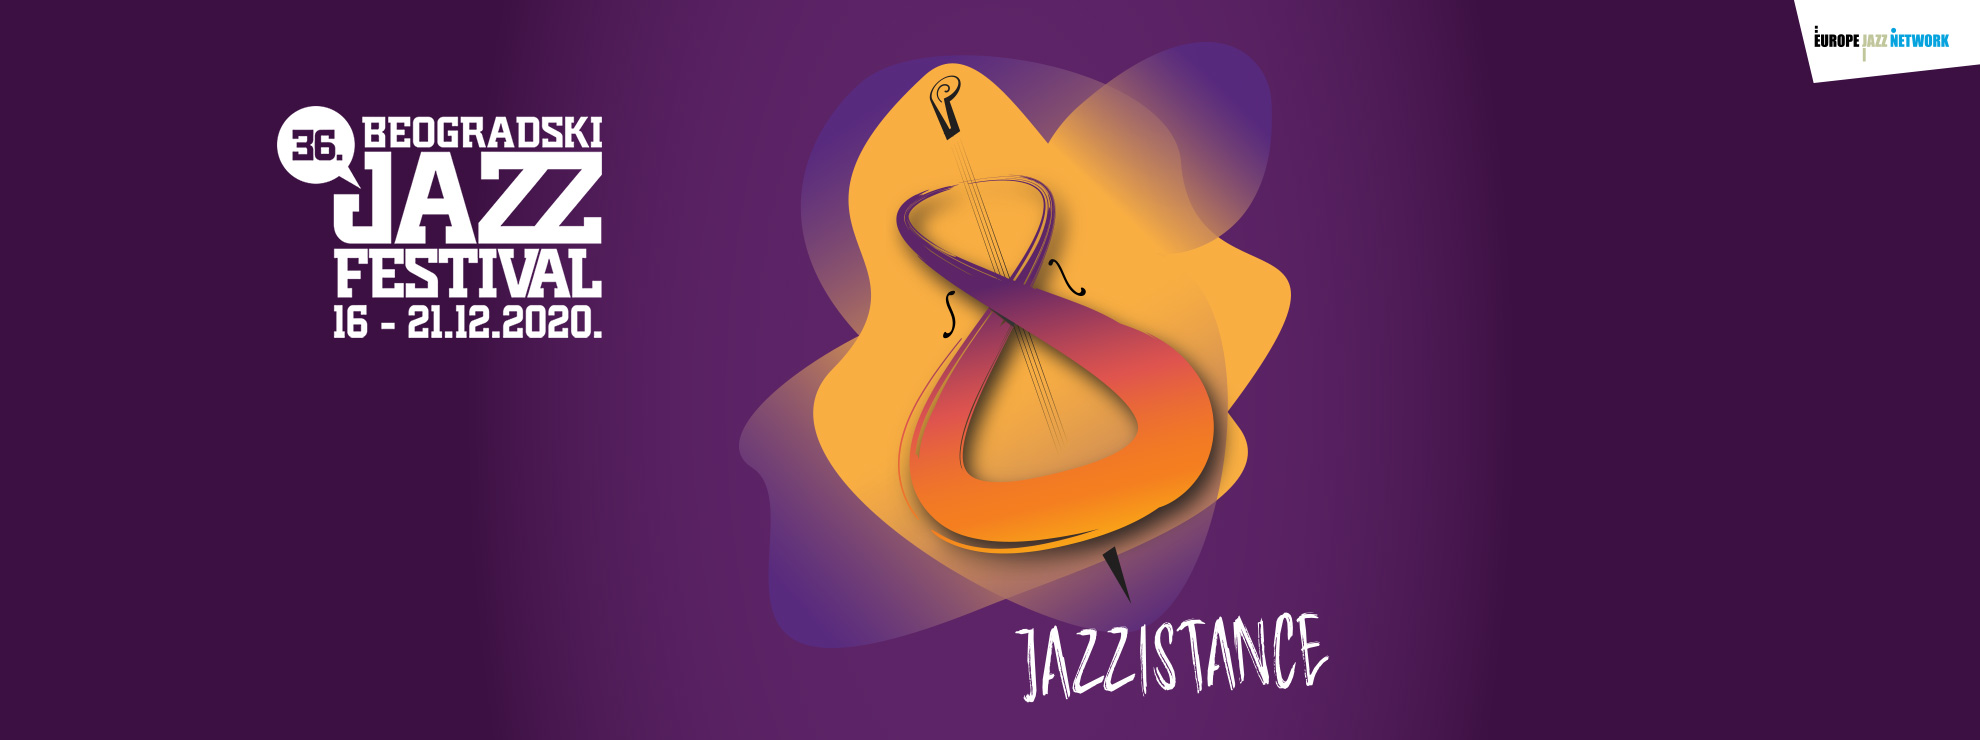 36th Belgrade Jazz Festival 2020